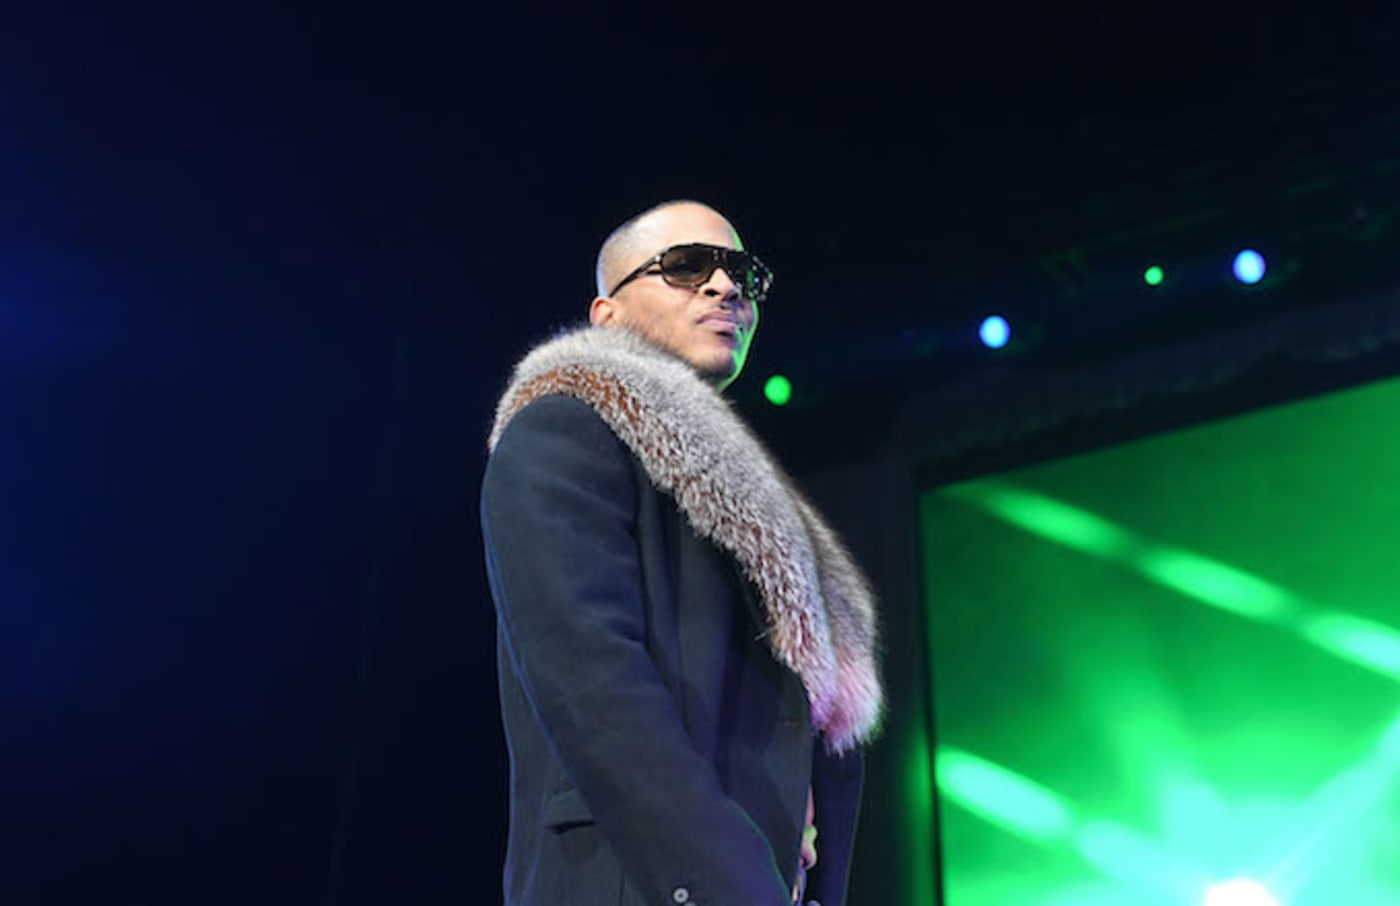 Rapper T.I. performs at the Great Xscape tour.